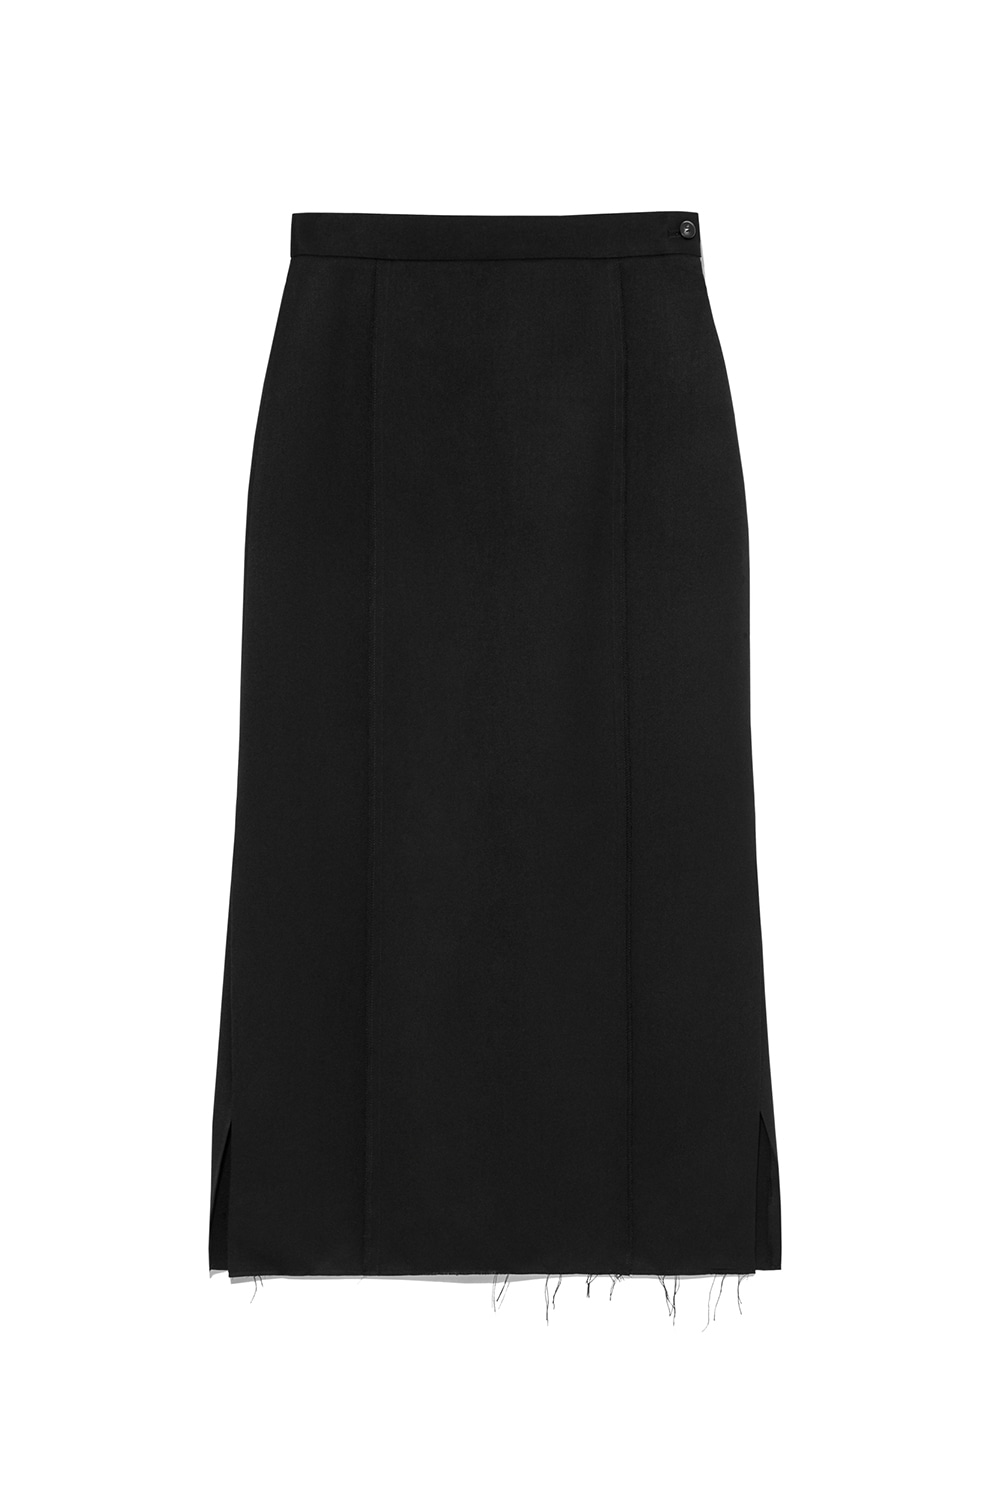 Side Slit Long skirt Women [Black]